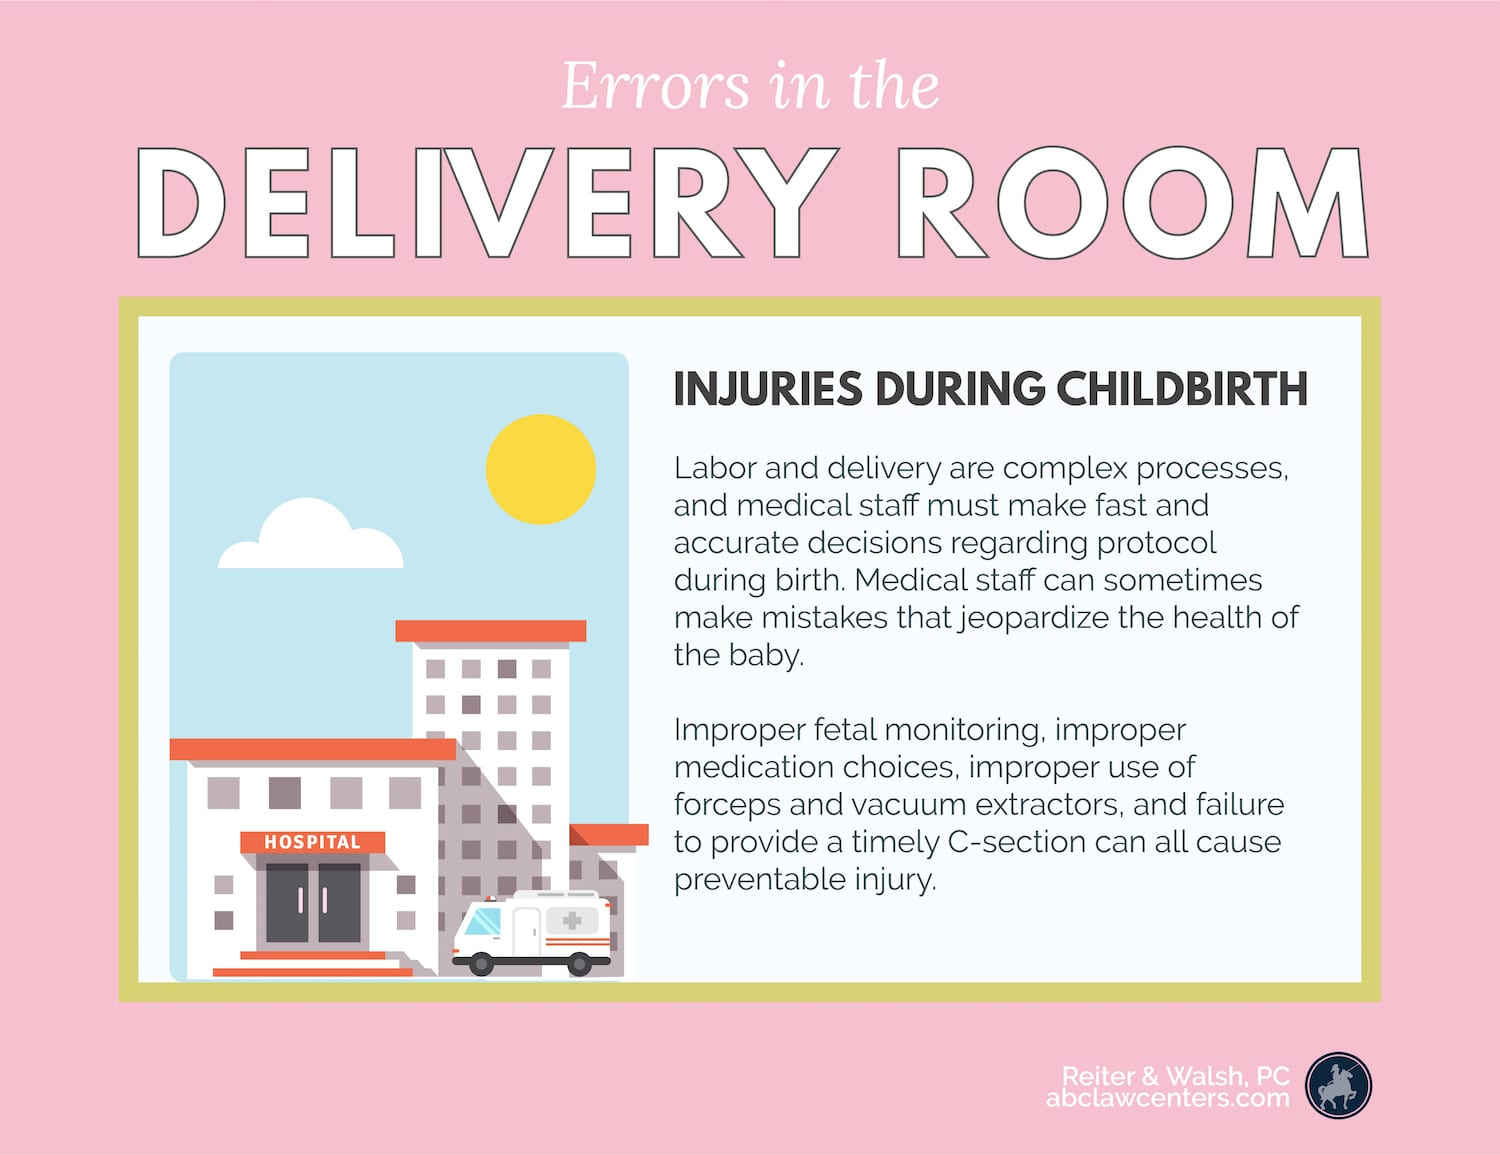 Delivery Room Errors - Childbirth Injuries